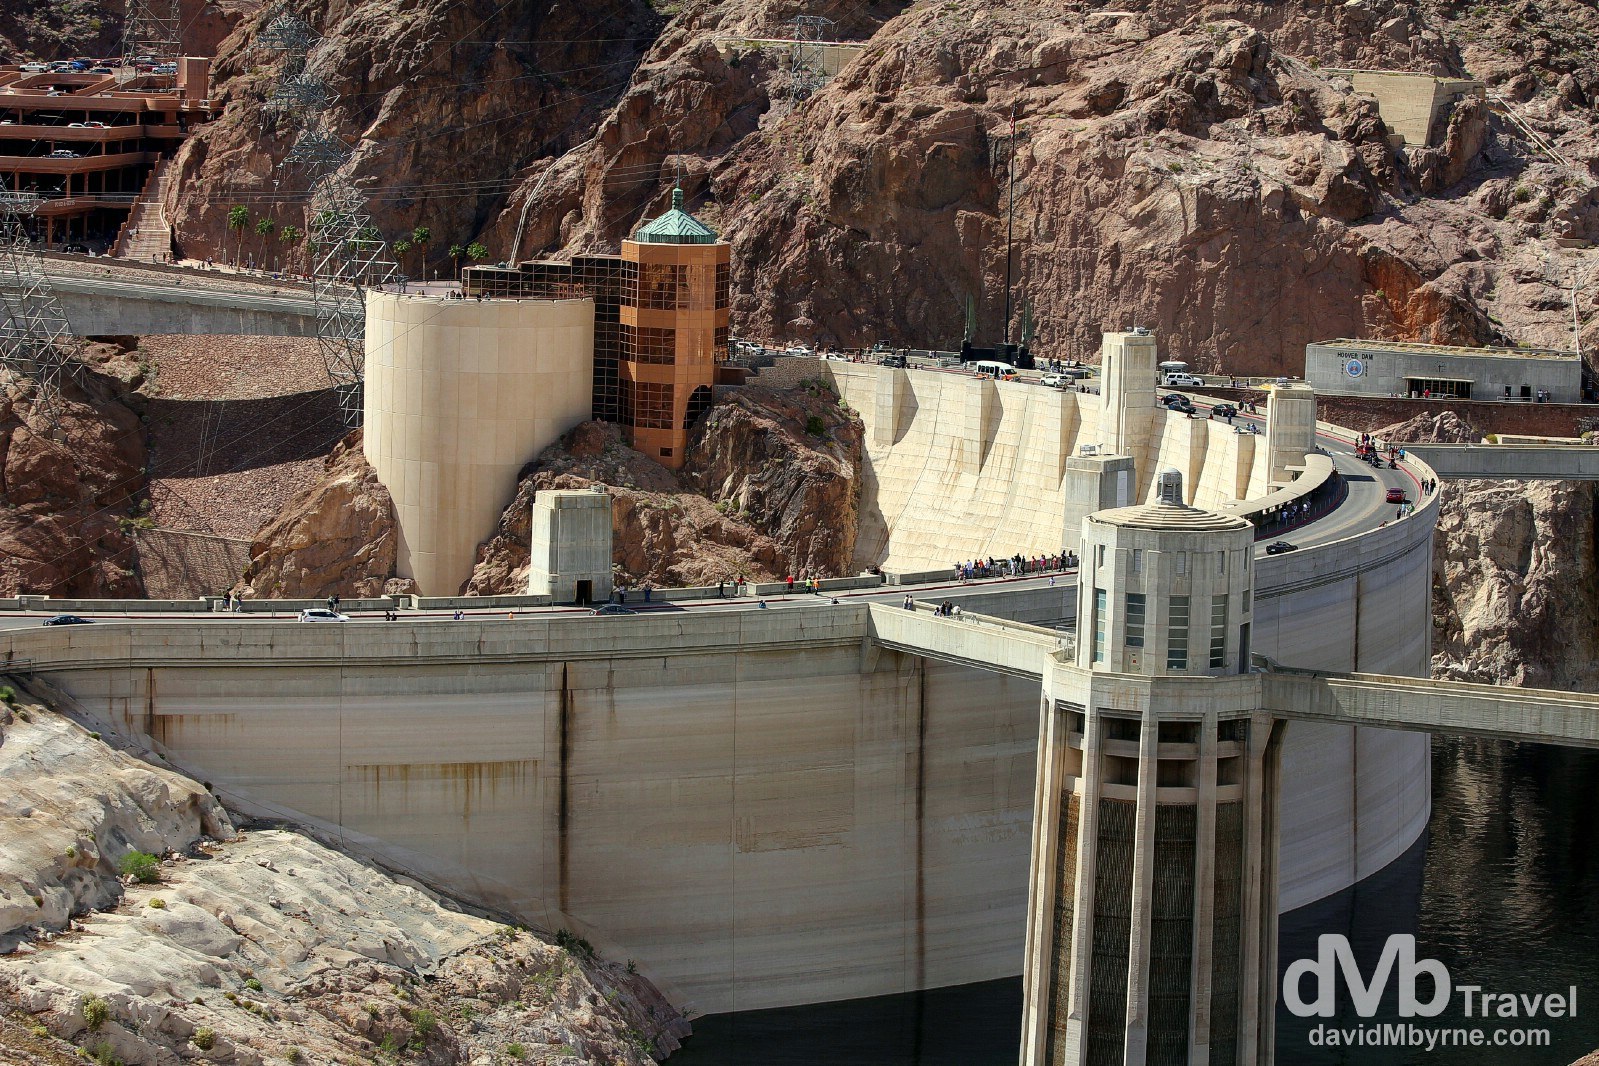 Taken from the Arizona side, the rear of the Hoover Dam on the Nevada & Arizona border, USA. April 6th 2013.